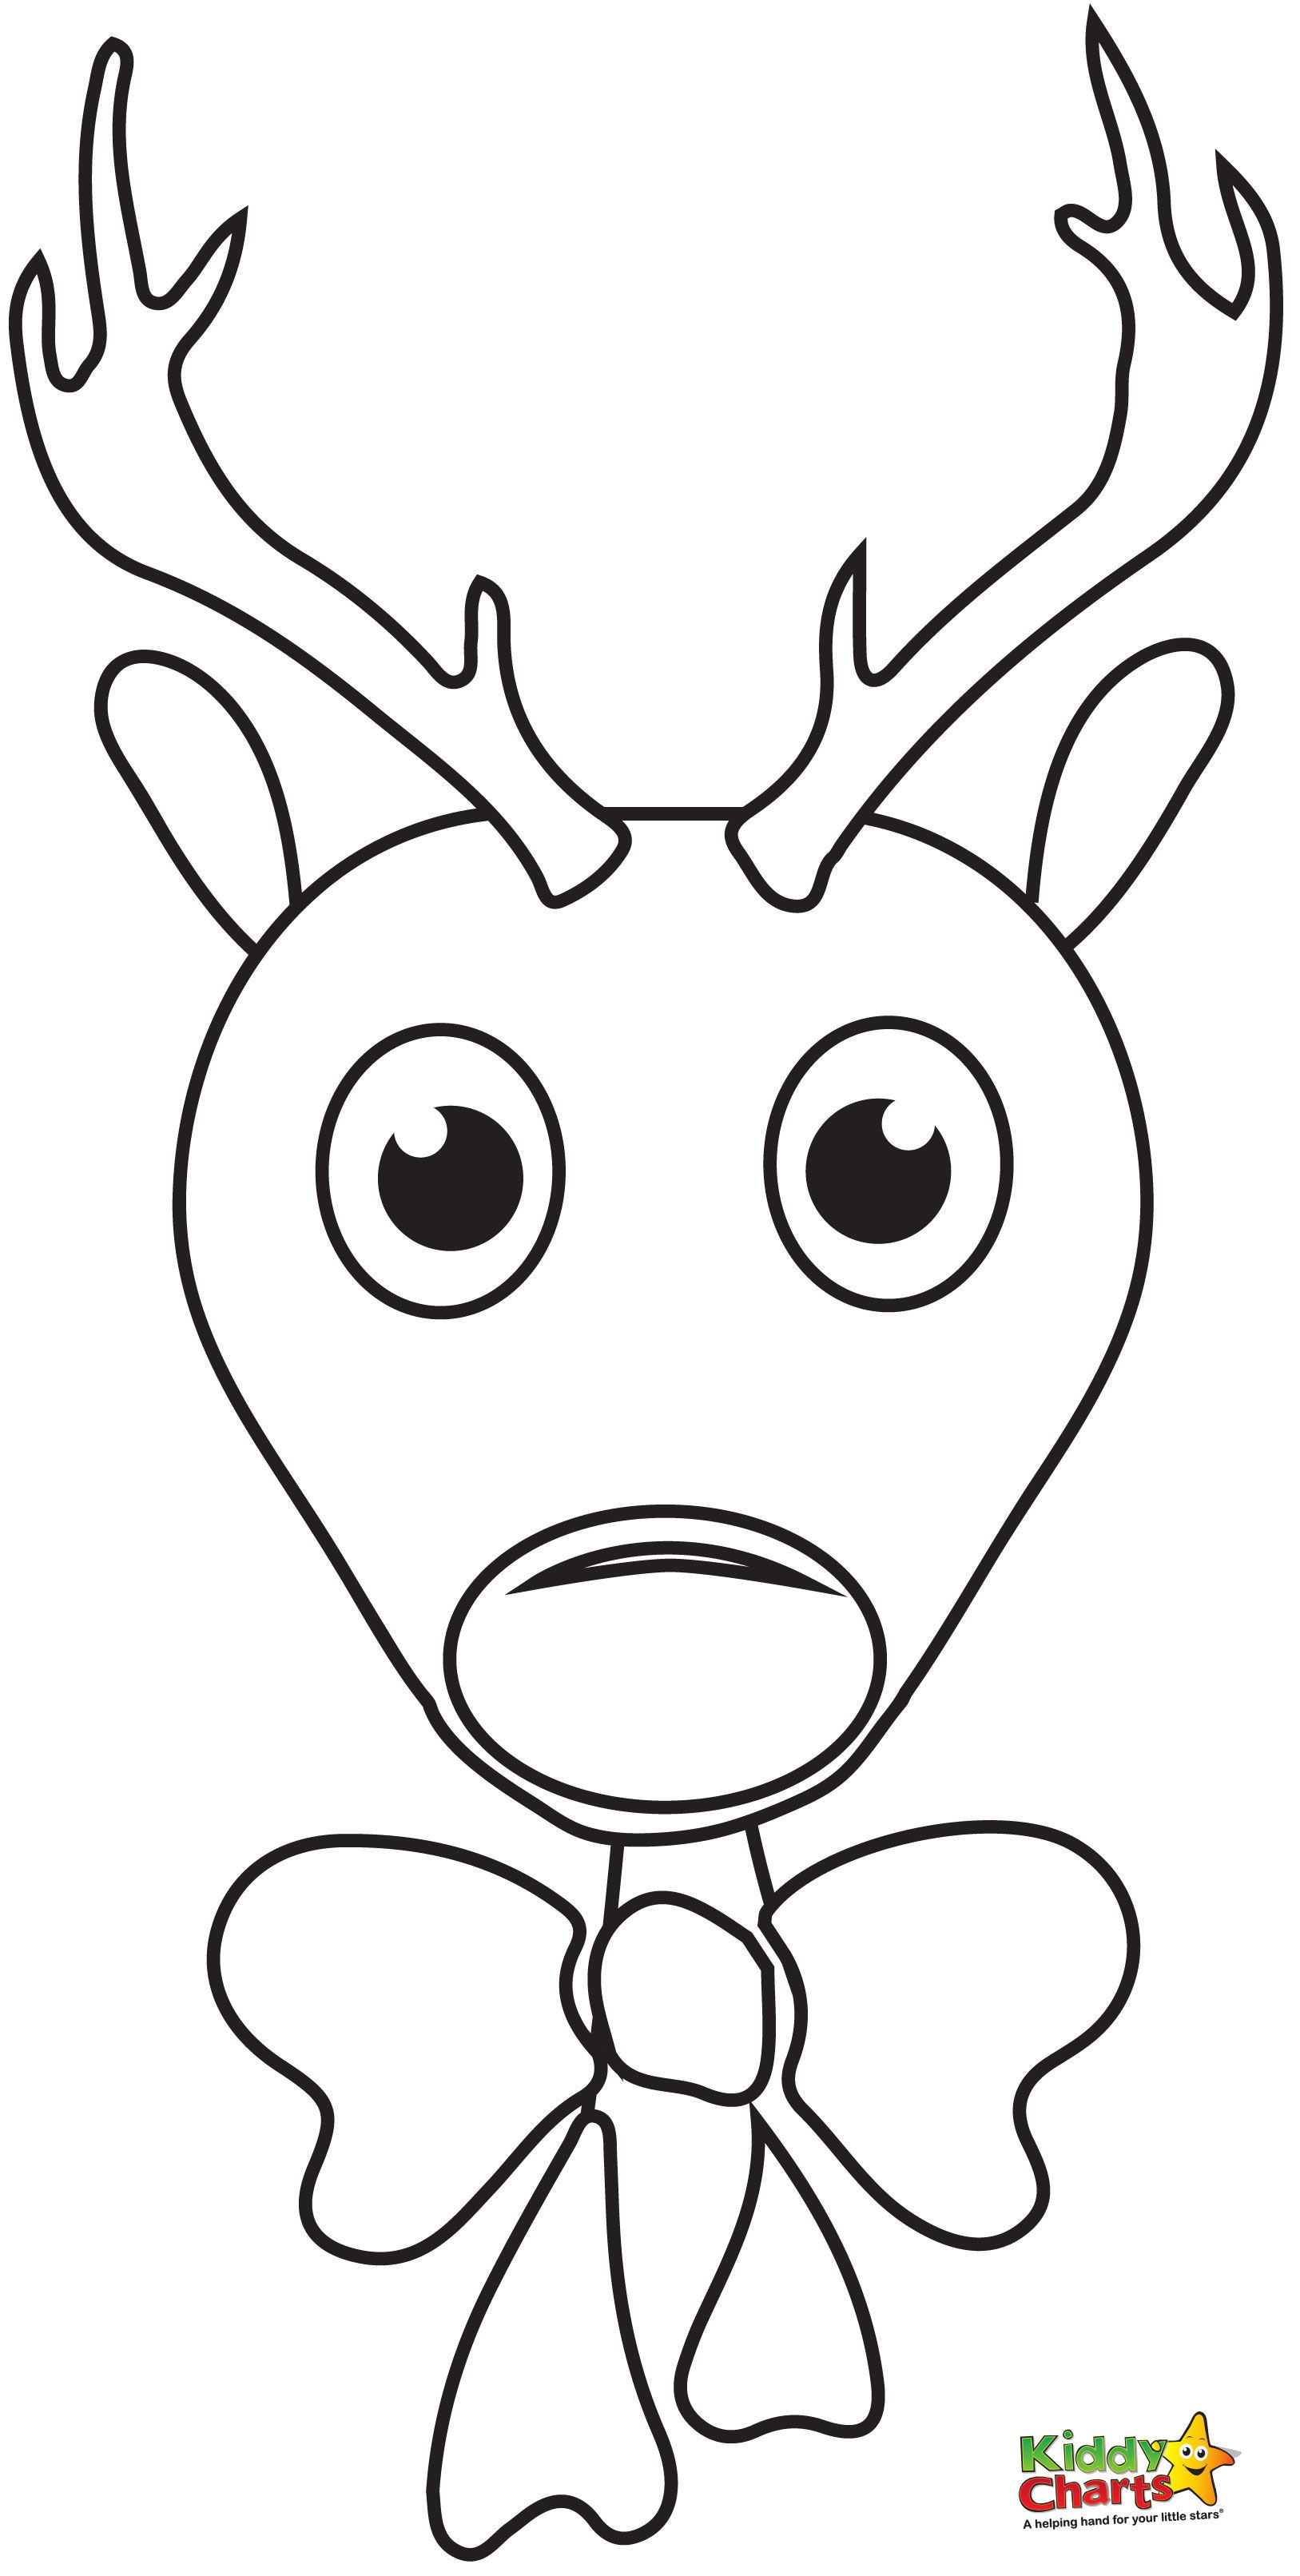 Rudolph Coloring Pages Rudolph Coloring Pages Animal Coloring